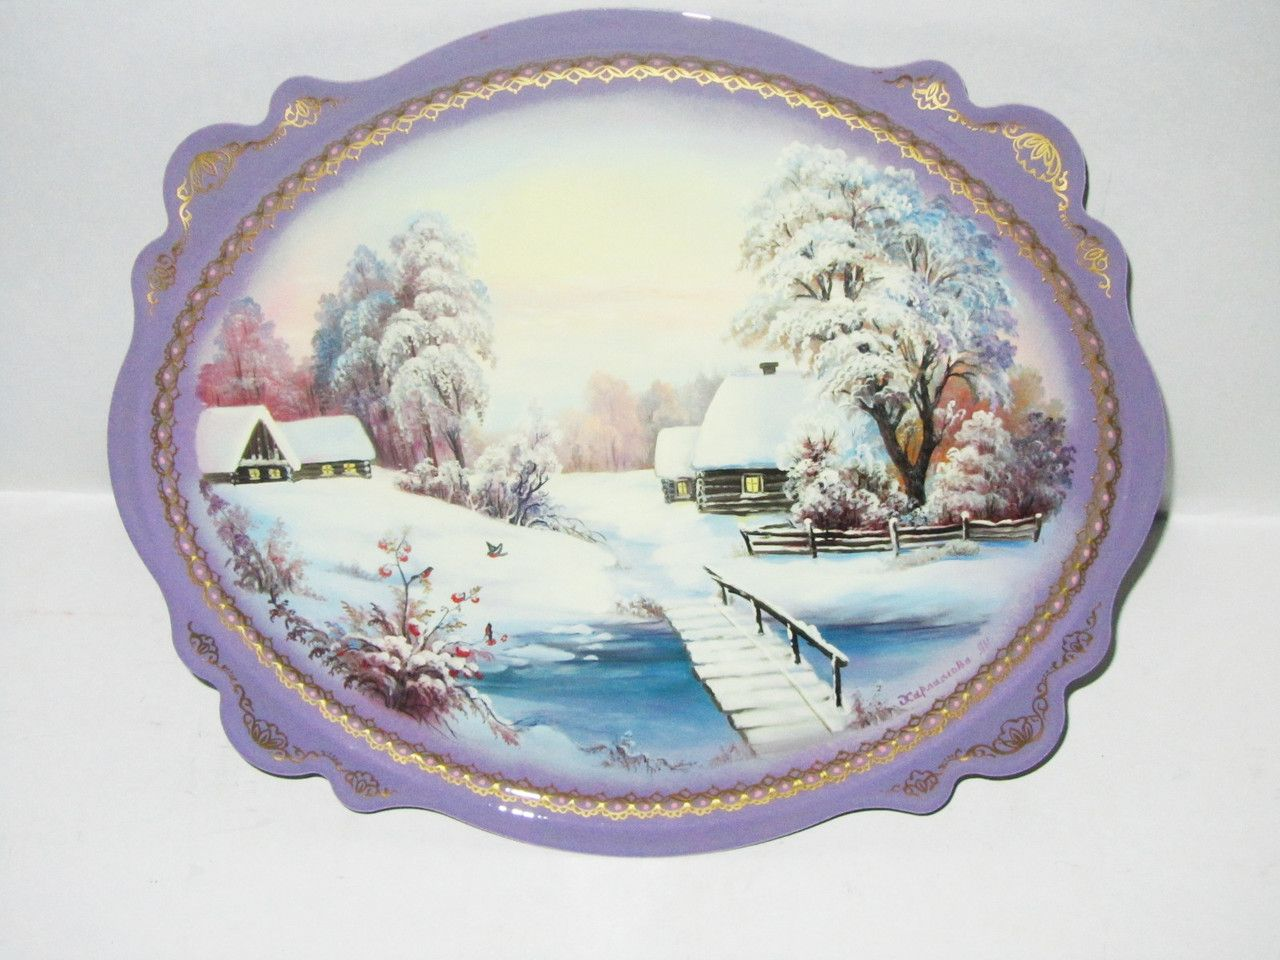 """Souvenirs from N. Tagil / Tray """"Subject painting. Country winter"""", 30x25 cm"""